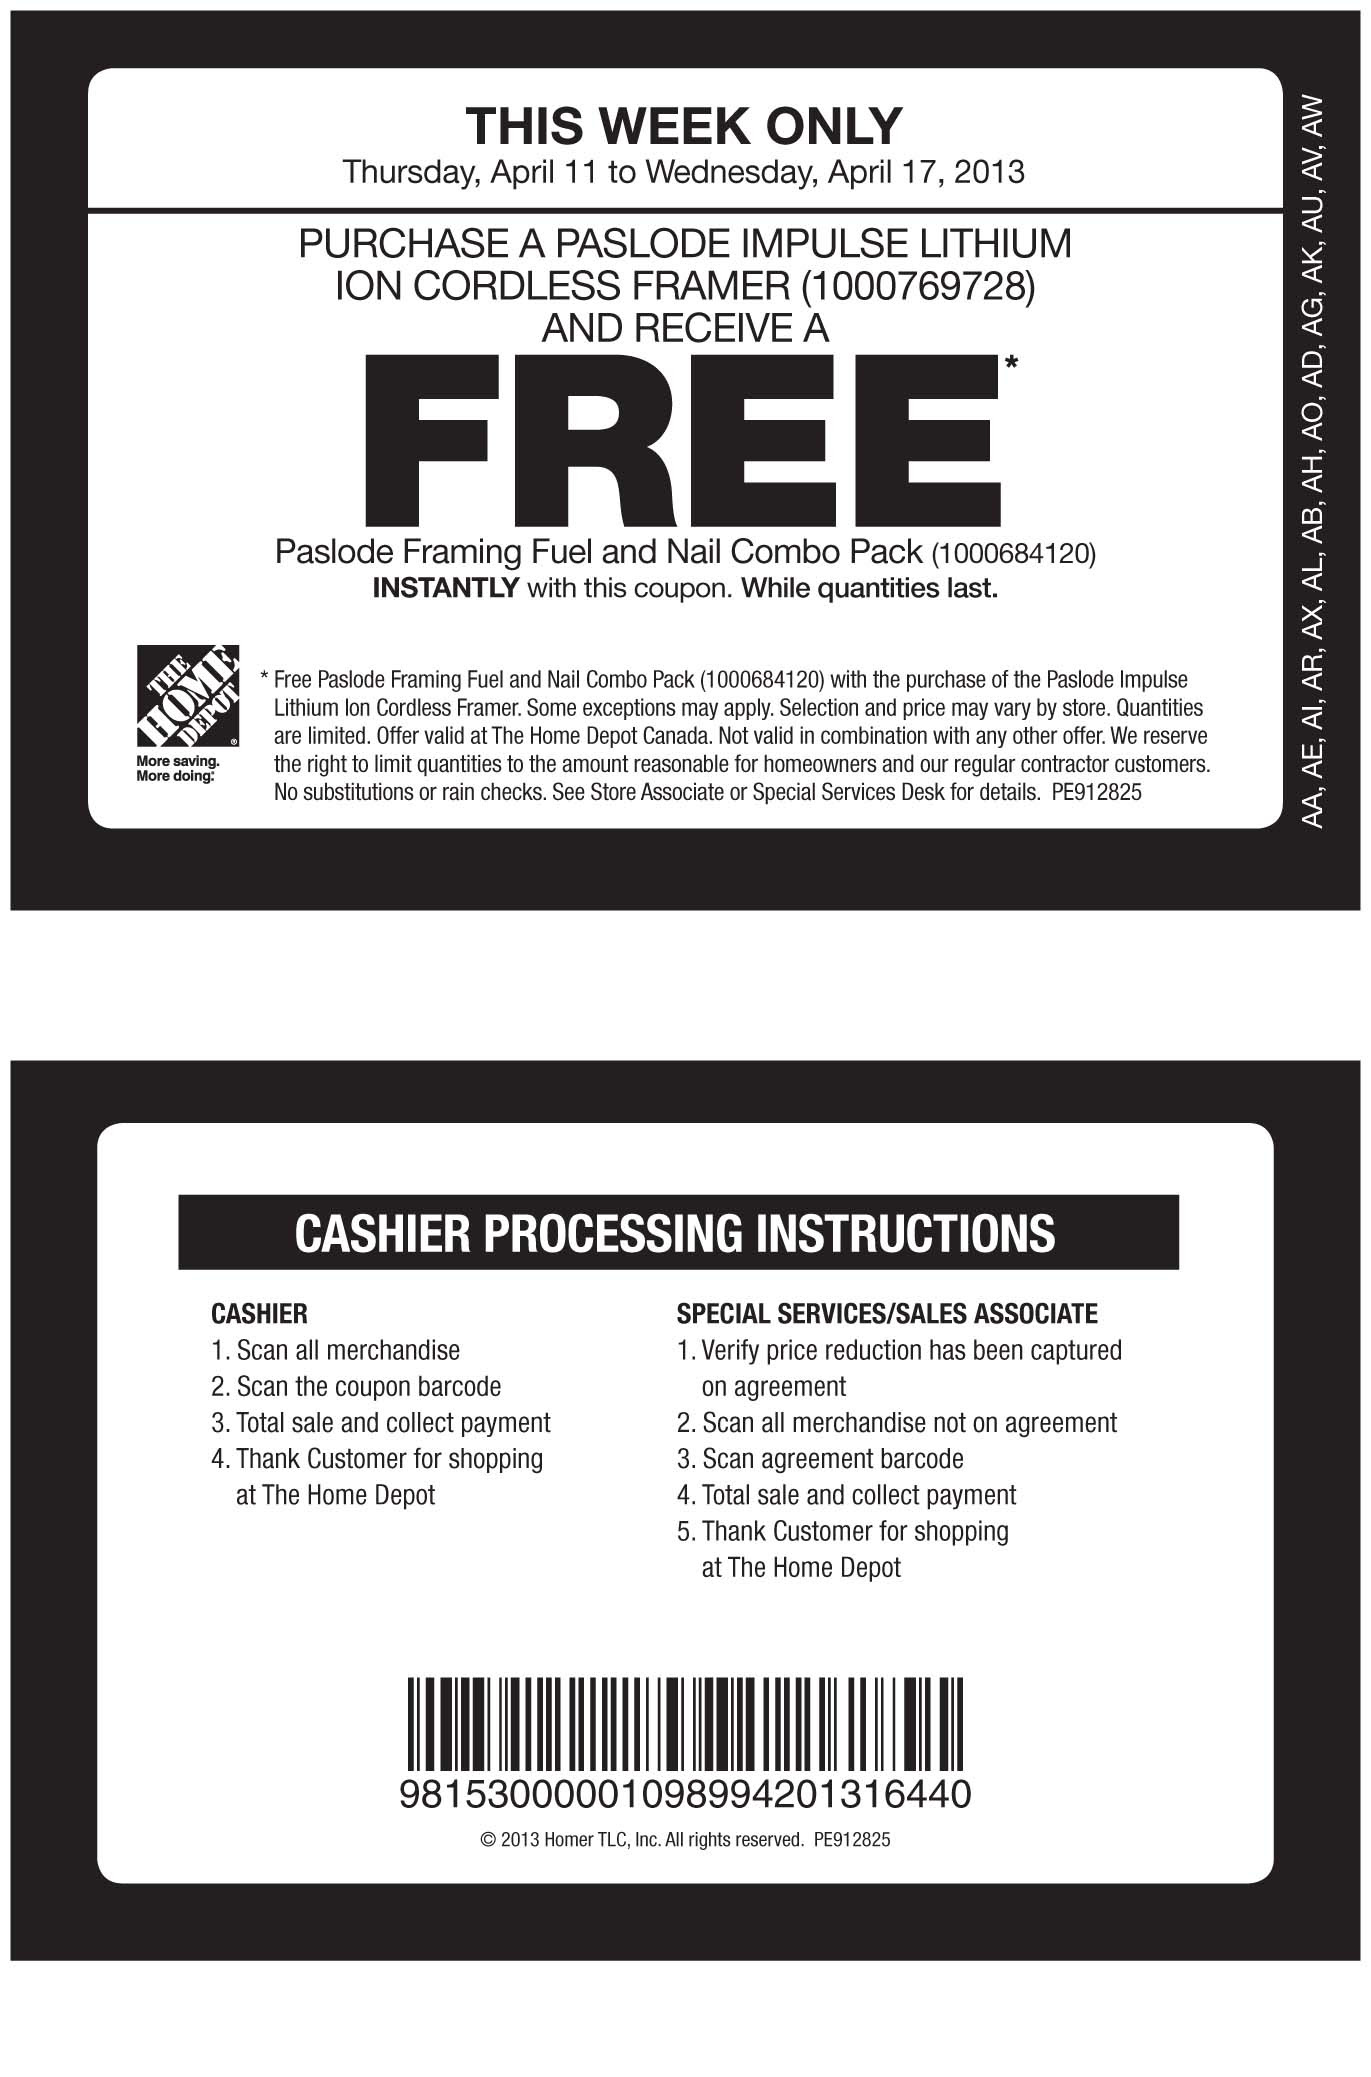 Home depot printable coupons canada M&m coupons free shipping